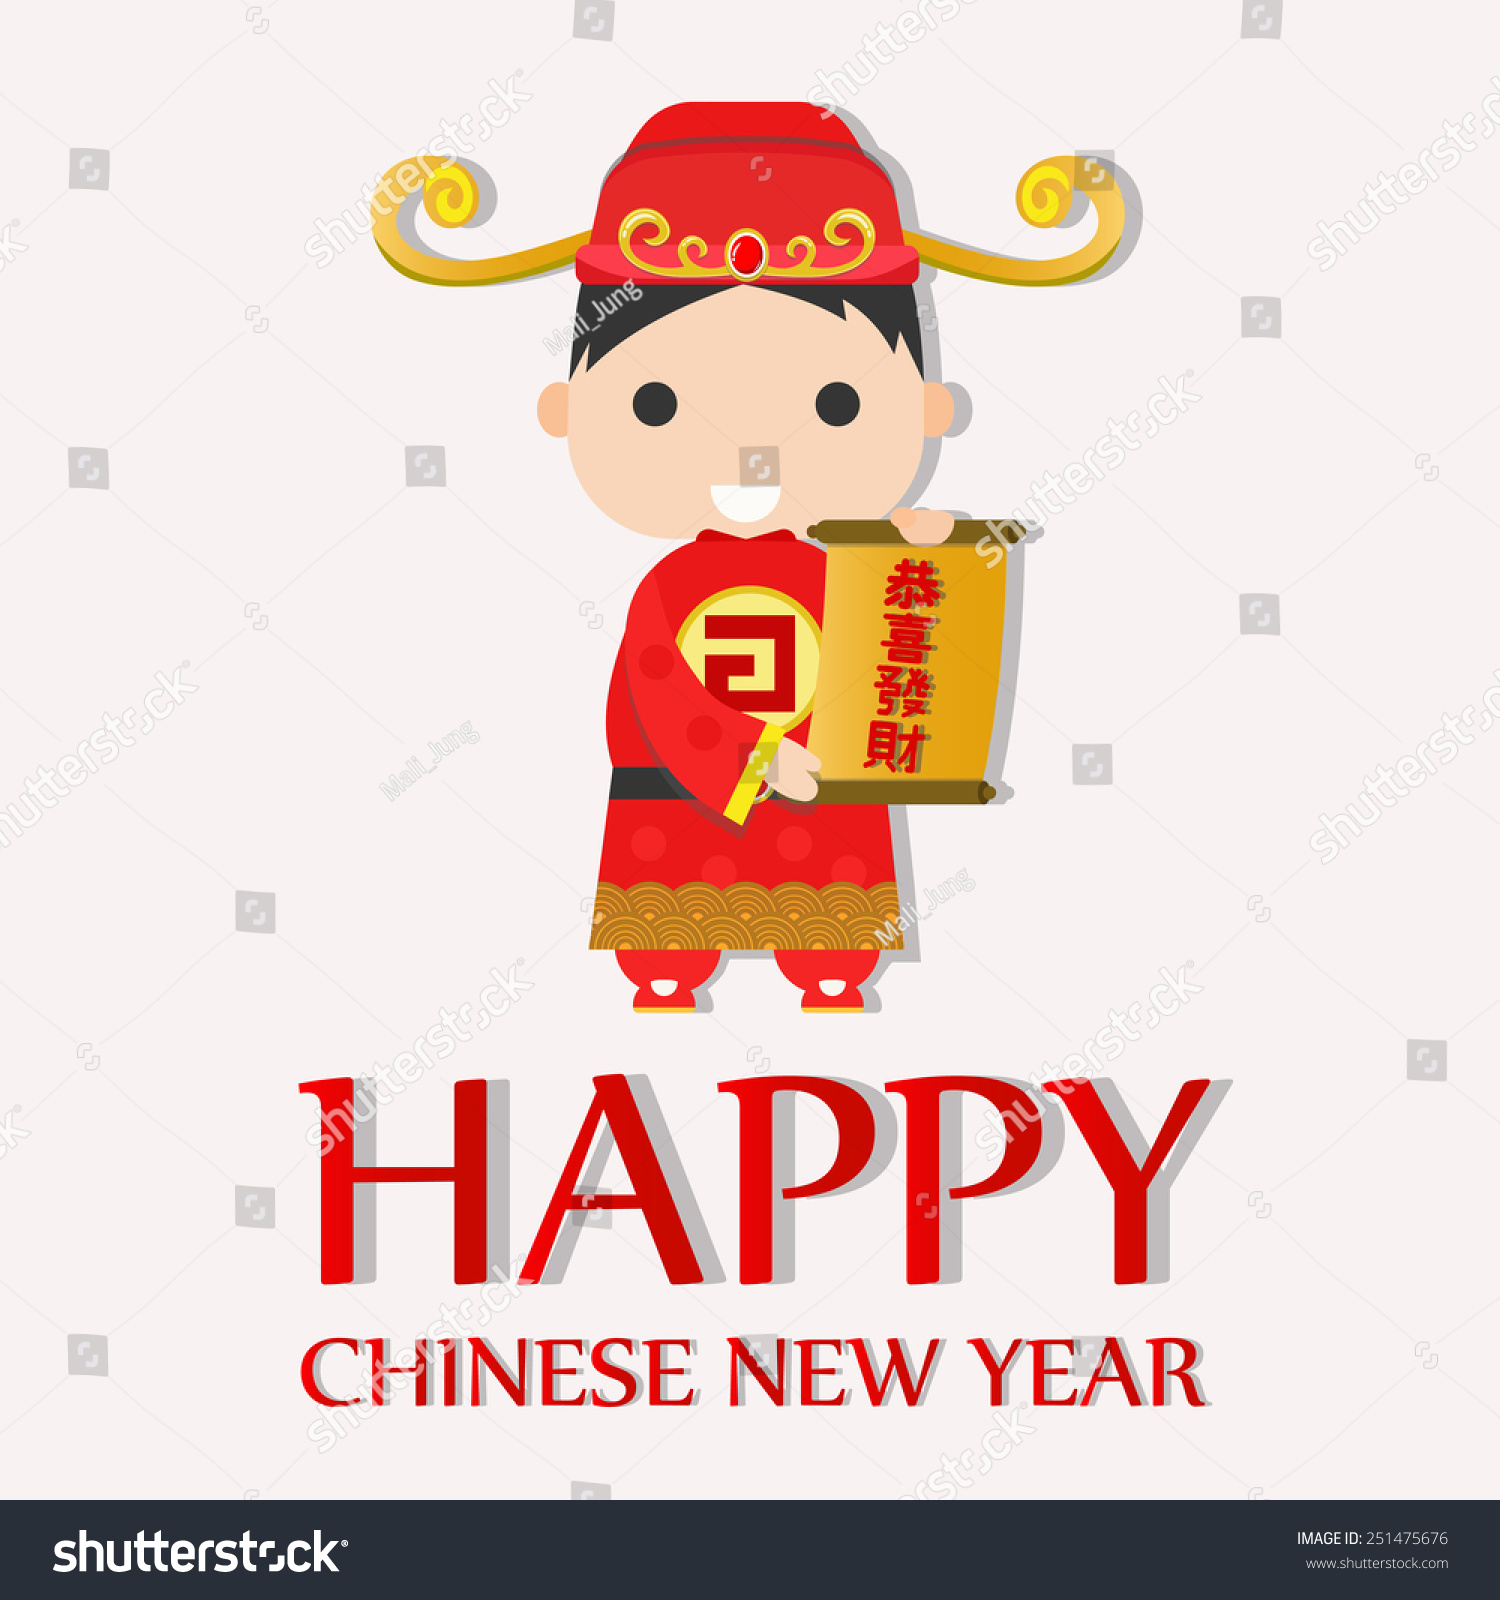 Happy Chinese Boy Wealth Chinese Text Stock Vector (Royalty Free ...